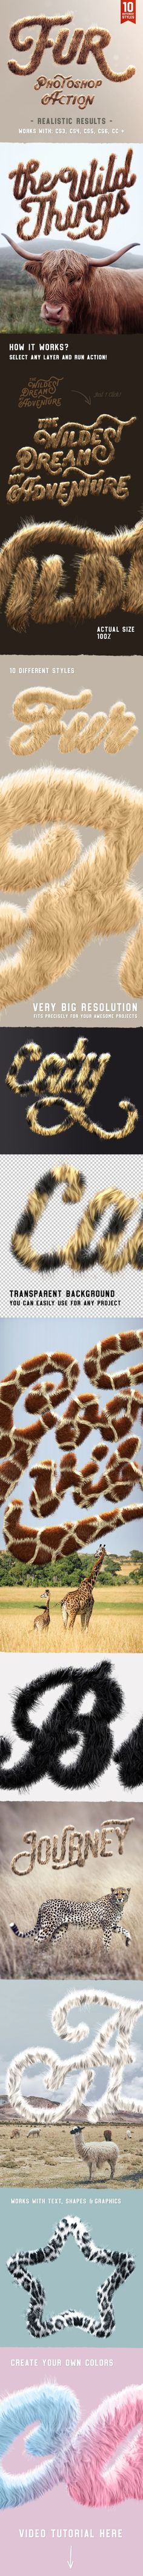 Realistic Fur Photoshop Actions — Layered PSD #realistic #mockup • Download ➝ https://graphicriver.net/item/realistic-fur-photoshop-actions/19921580?ref=pxcr